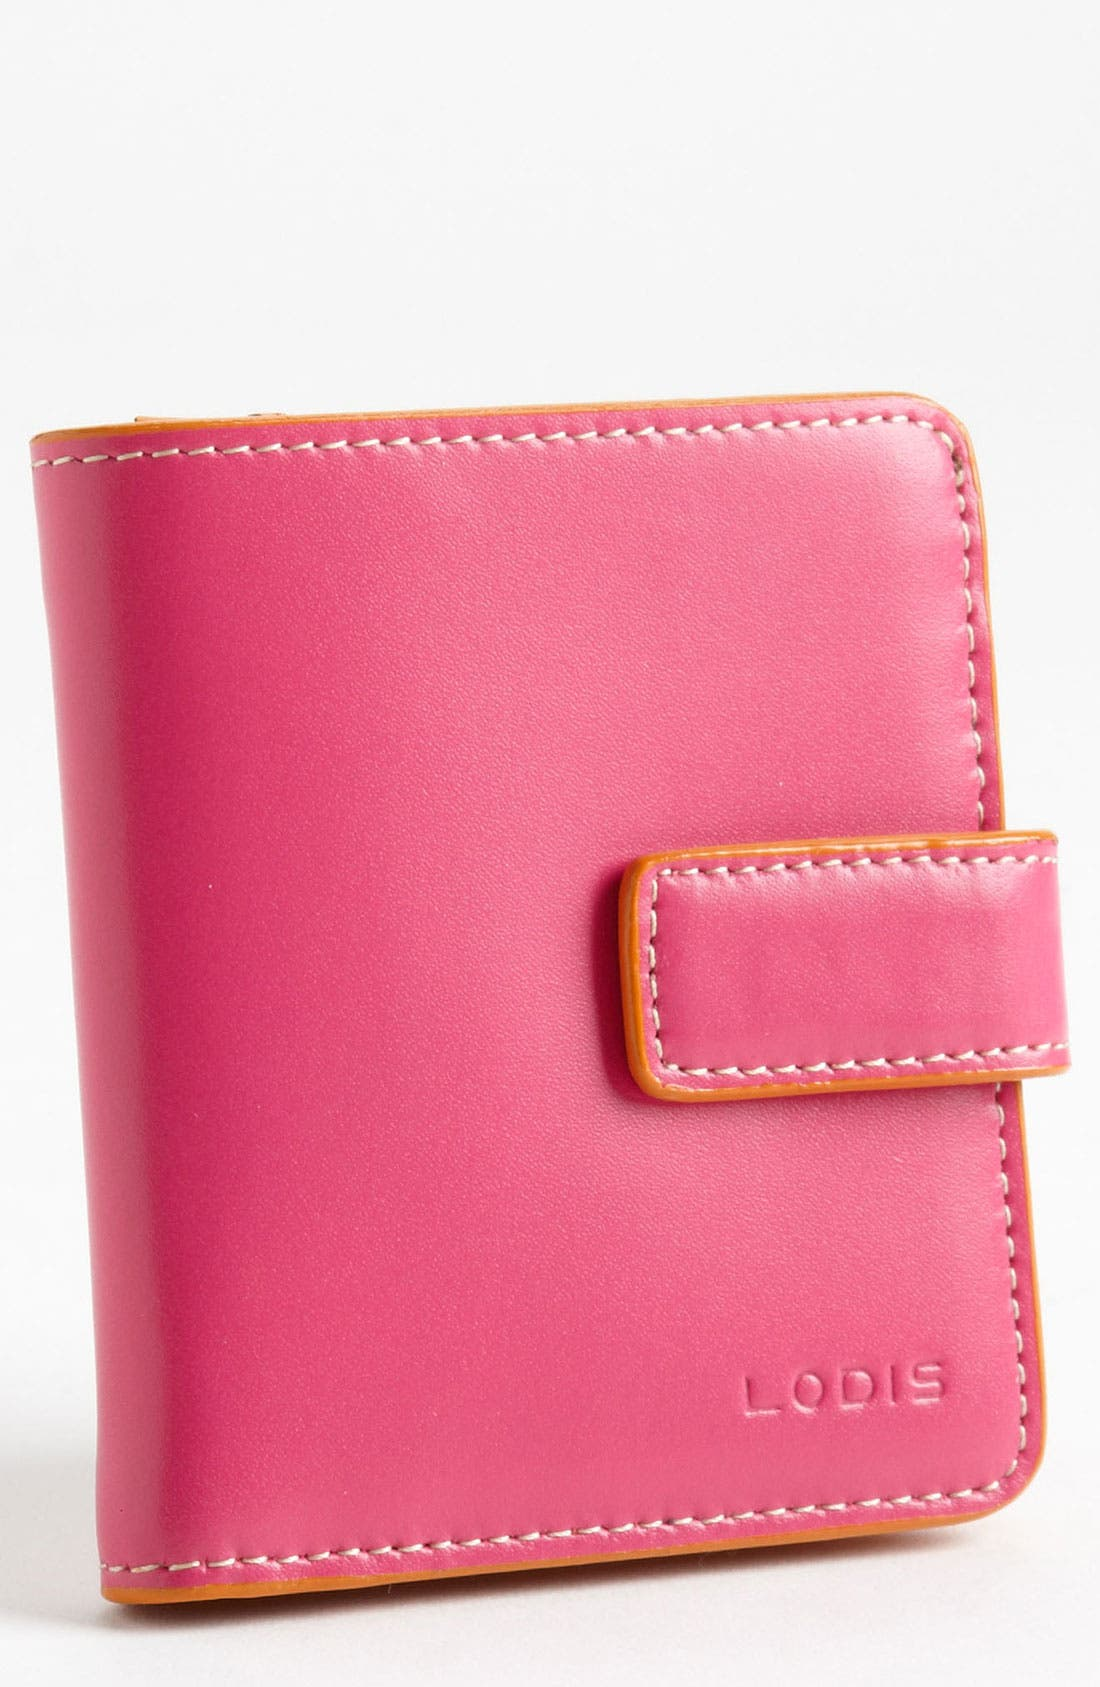 Alternate Image 1 Selected - Lodis 'Audrey' Wallet